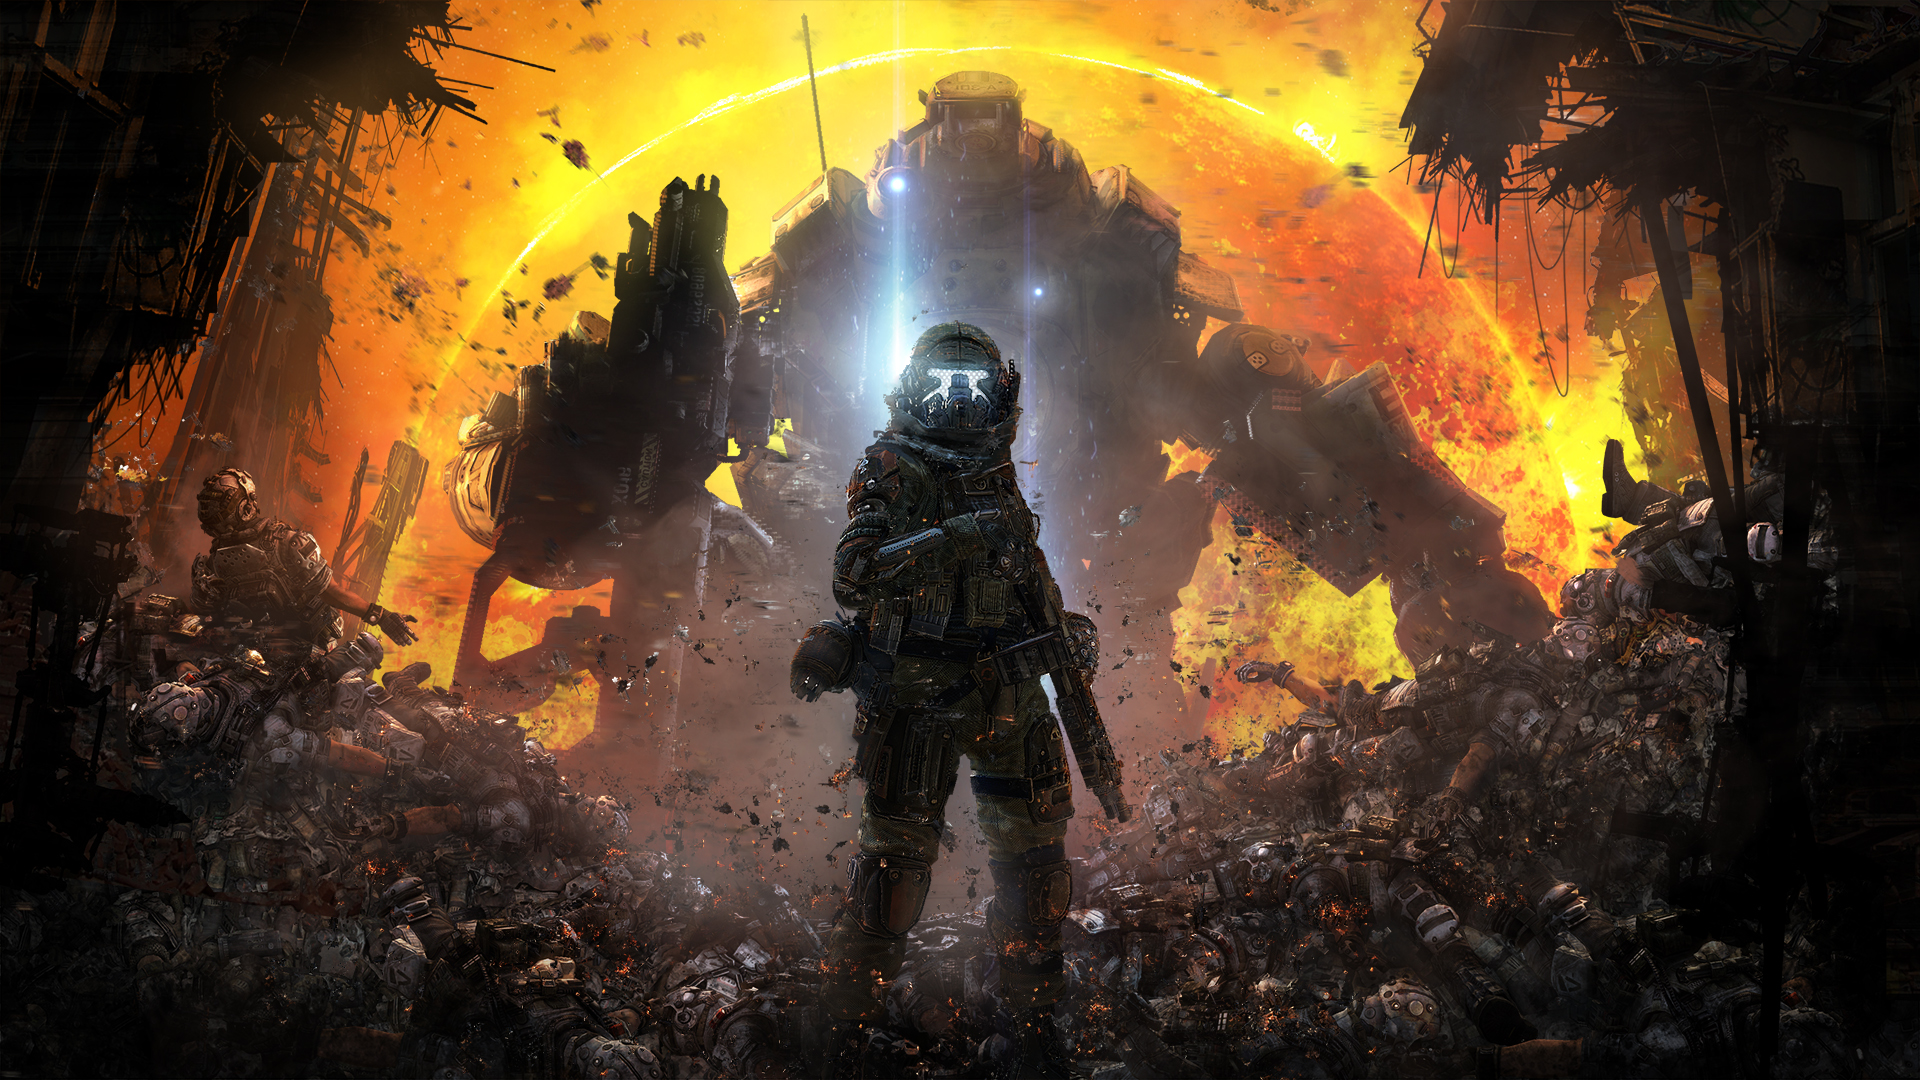 Titanfall Full HD Wallpaper and Background Image ...  Titanfall Iphone 5 Wallpaper